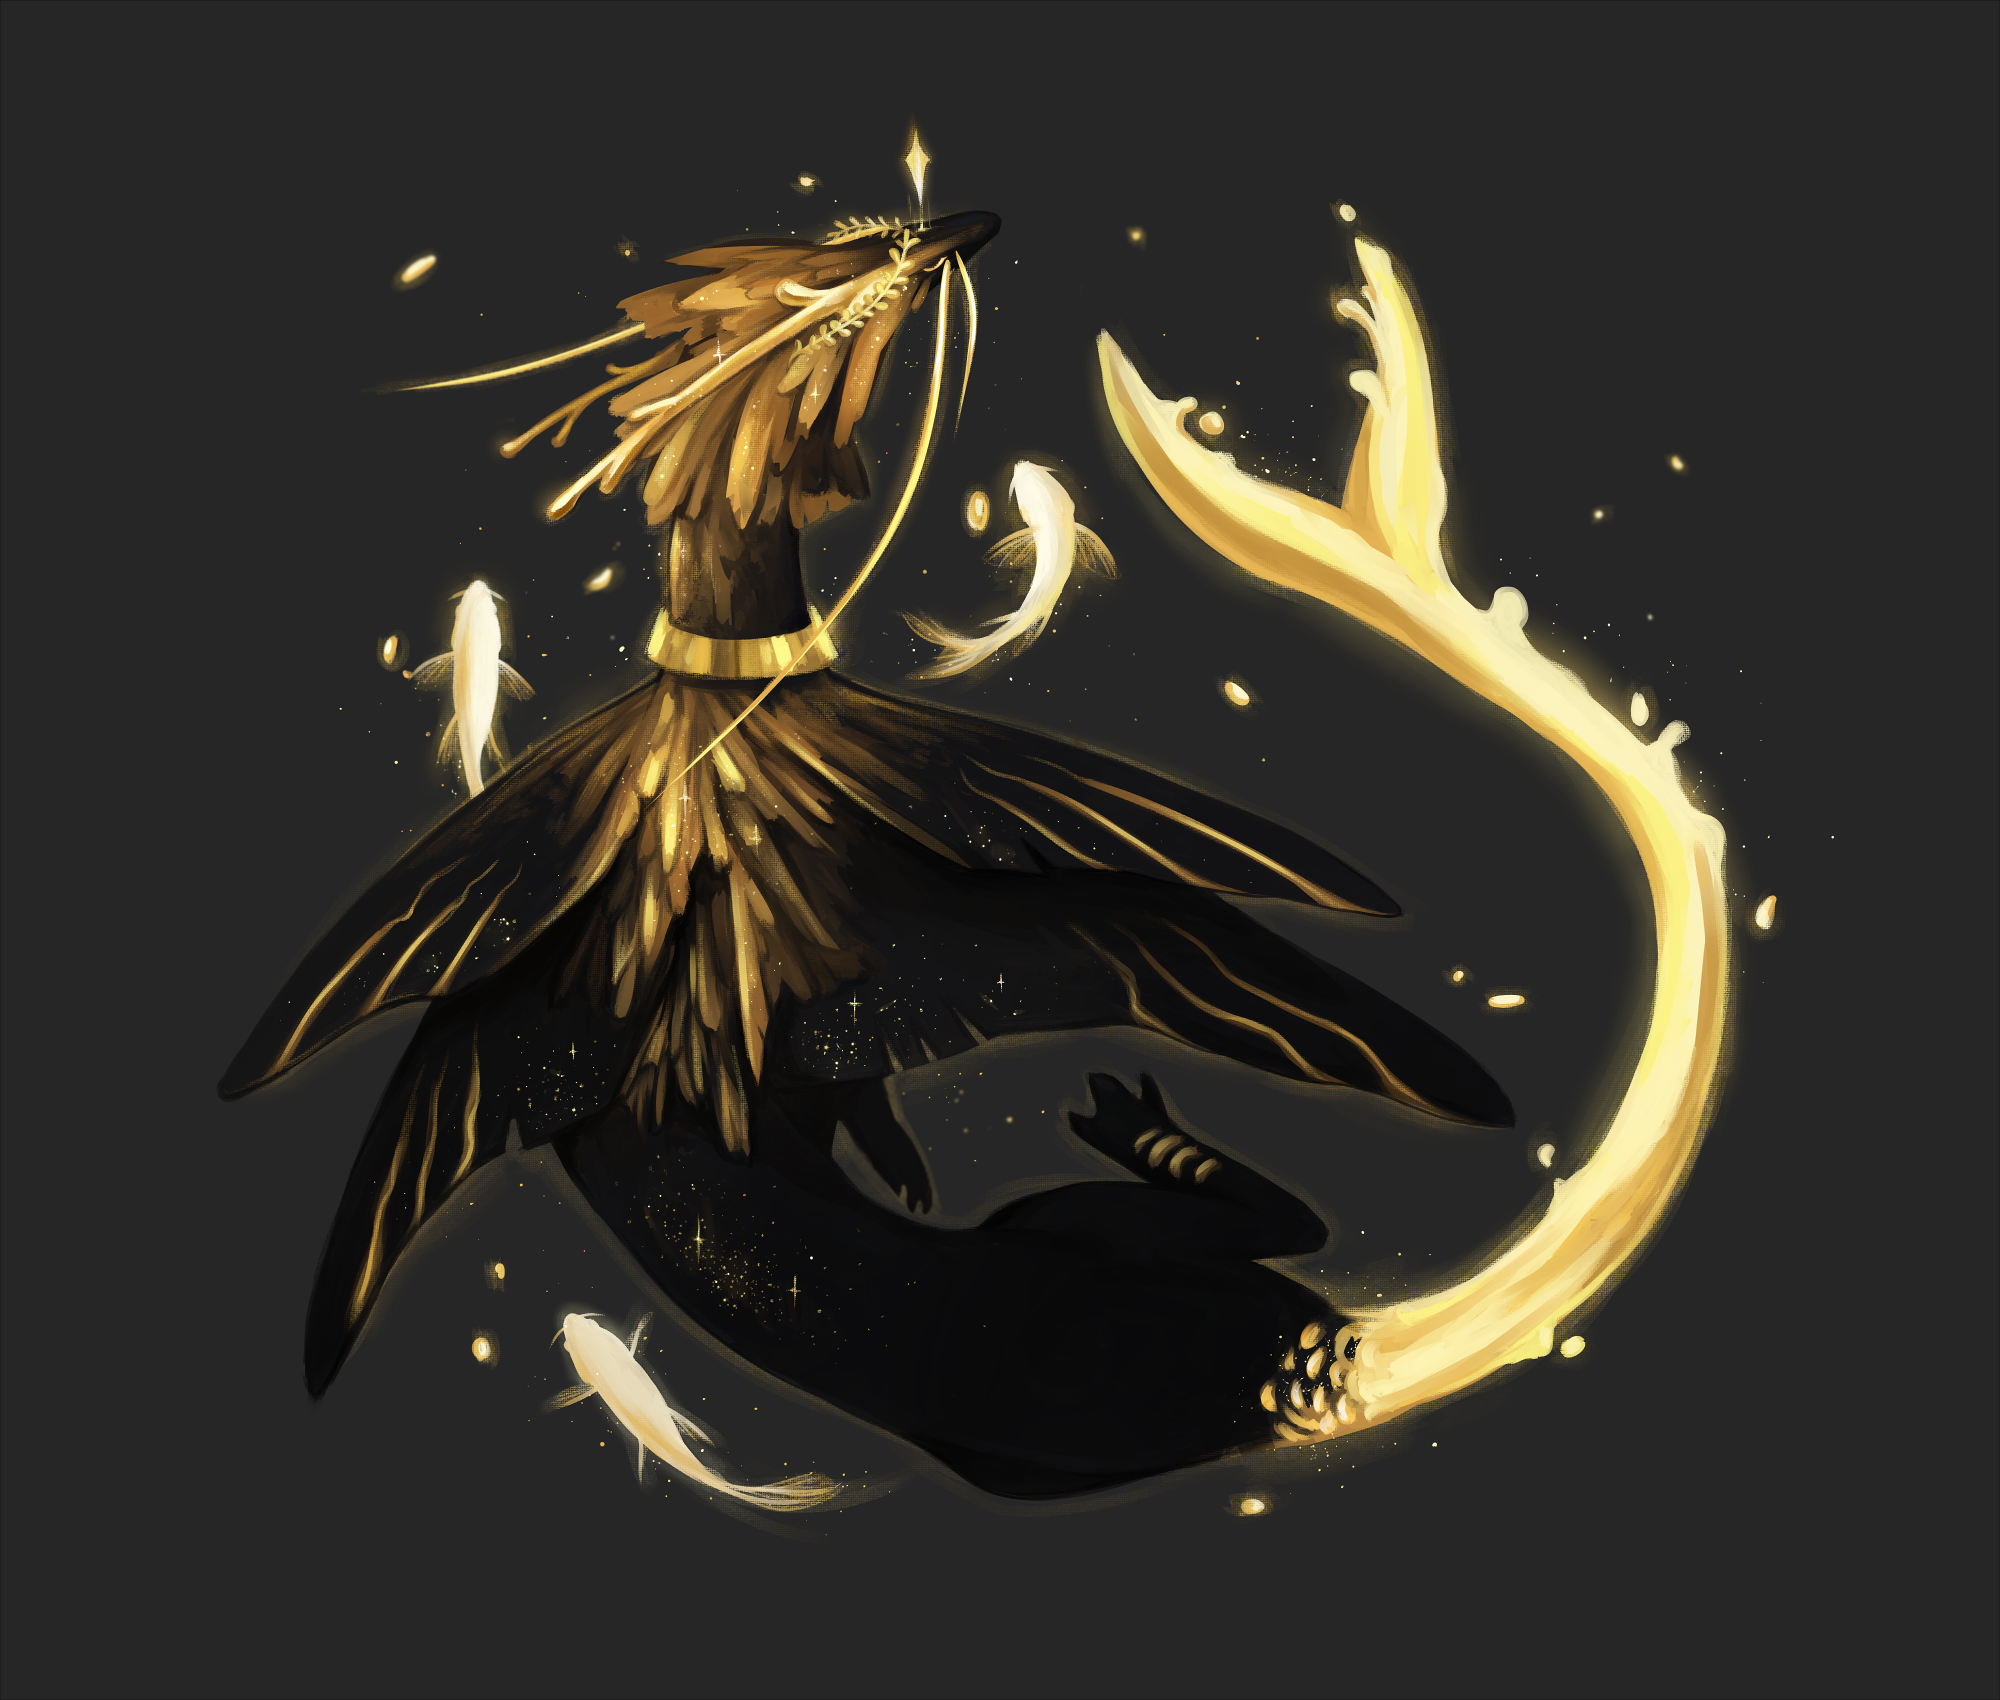 [CLOSED] The Golden Goddess by ninejays